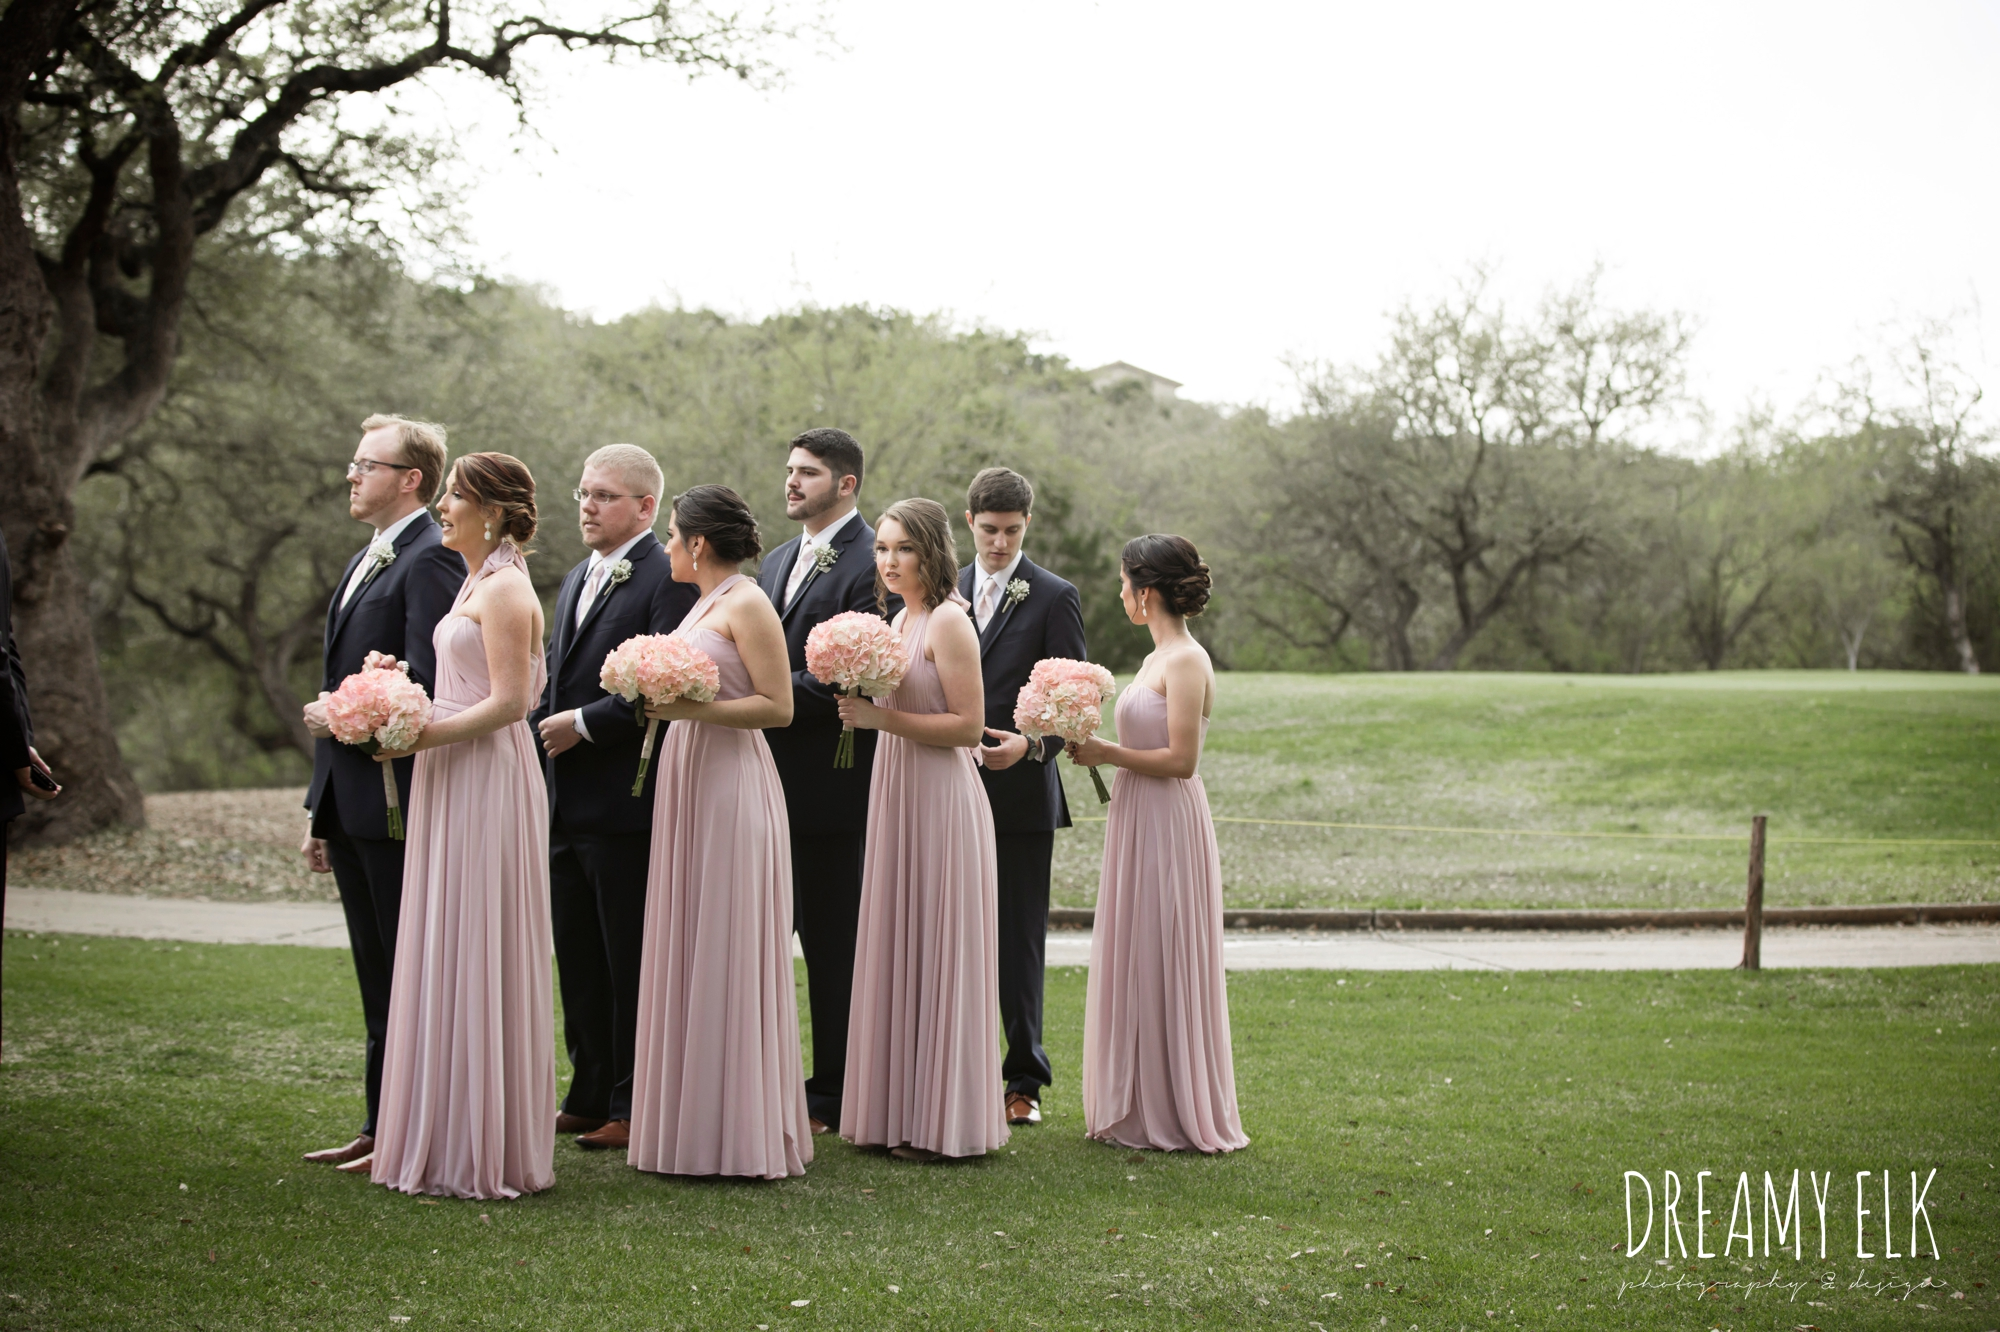 bride and bridesmaids, mix and matched floor length blush bridesmaid dresses, cloudy march wedding photo, canyon springs golf club wedding, san antonio, texas {dreamy elk photography and design}